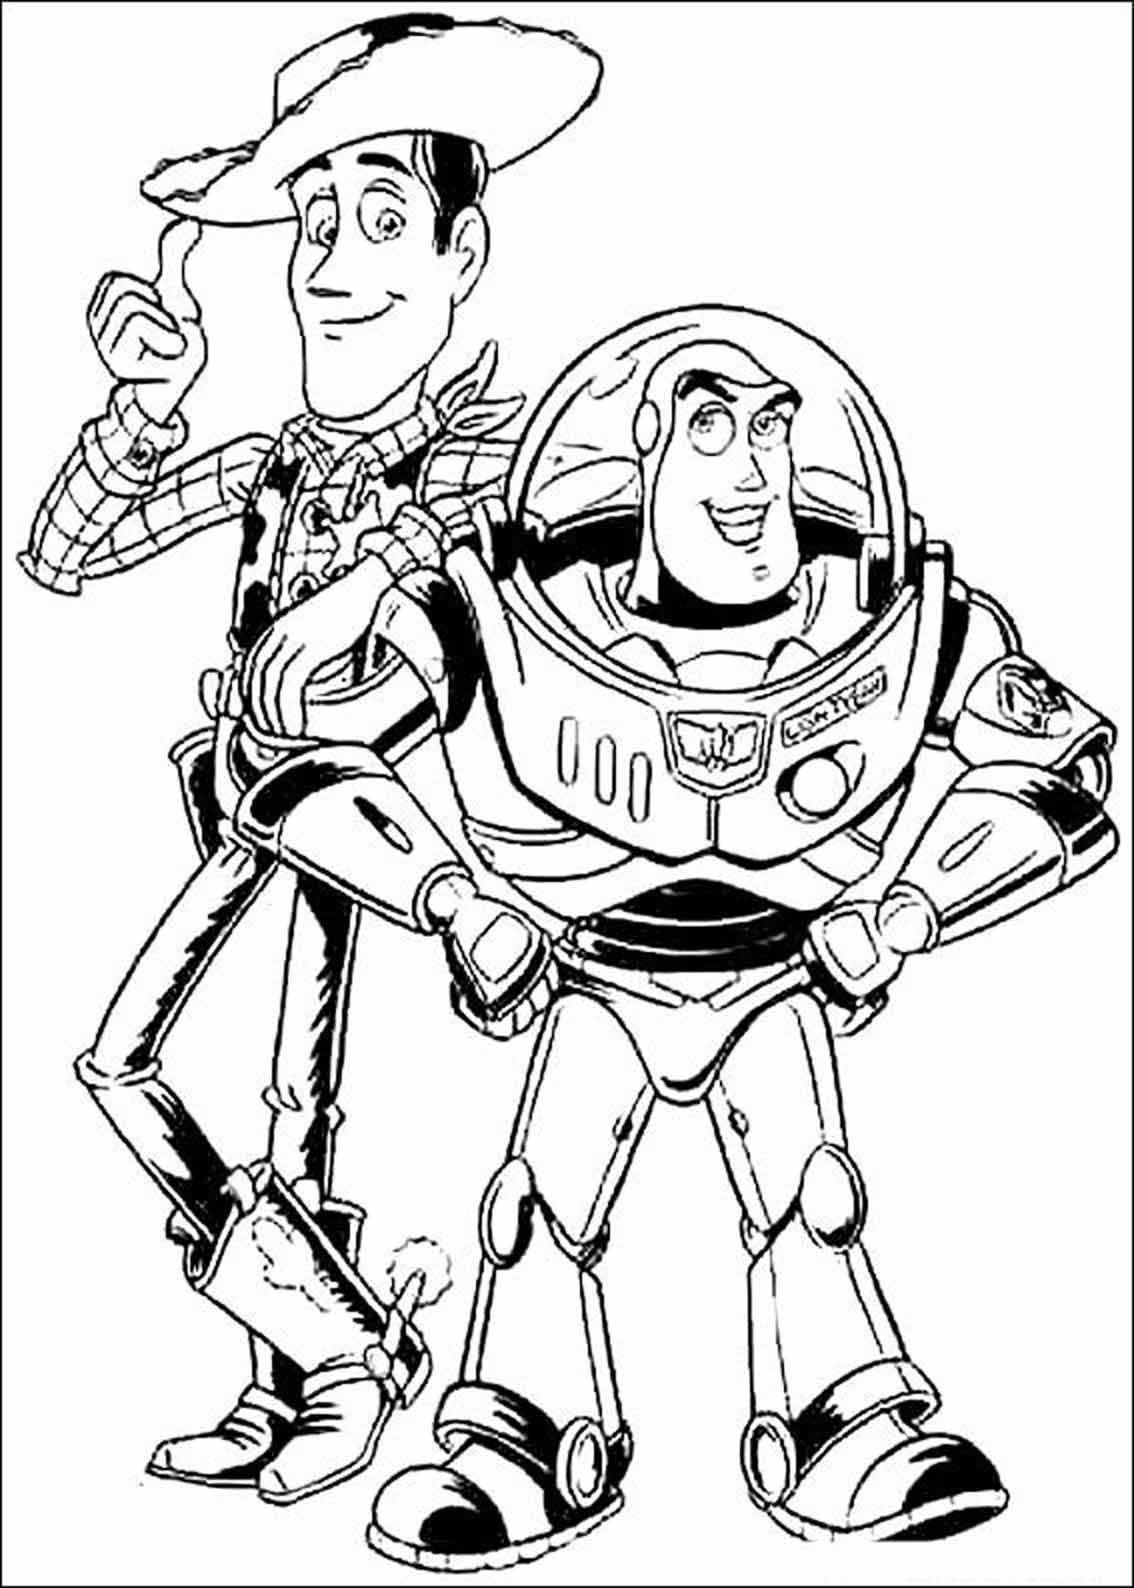 Woody And Buzz Lightyear Toy Story Kids Coloring Pages